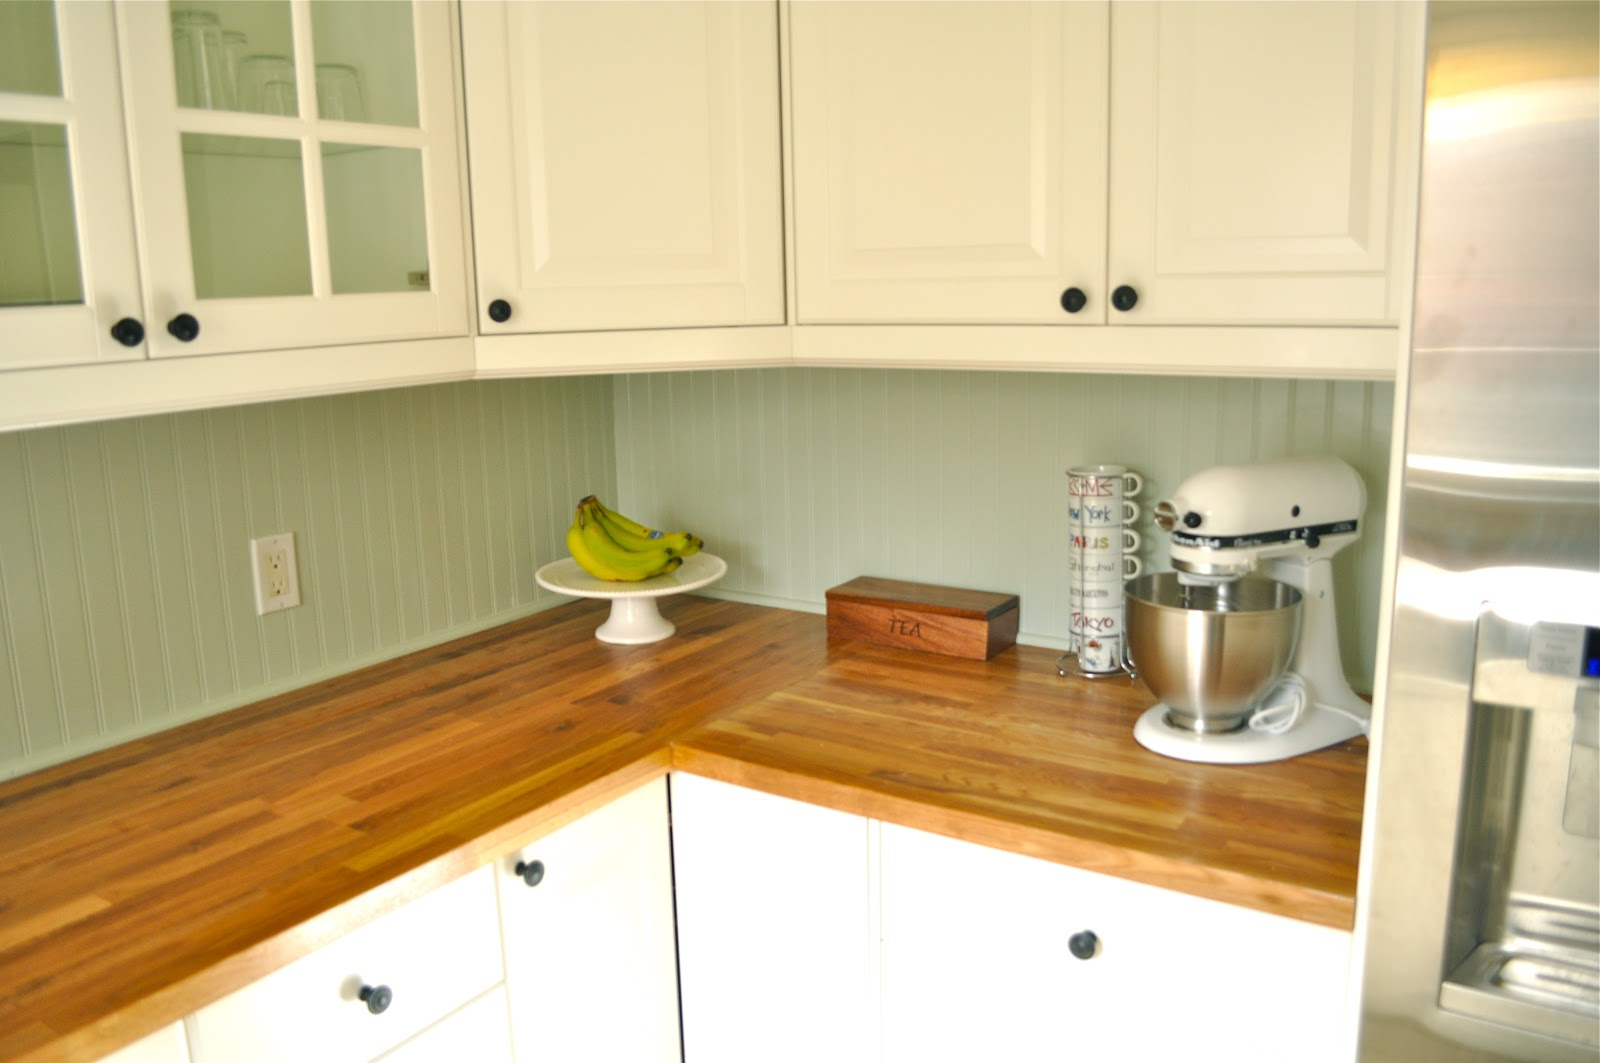 Best Backsplash For Butcher Block Countertops : It's Marvelous: a few kitchen follow-ups: butcher-block counters, $50 backsplash and (not) diy ...